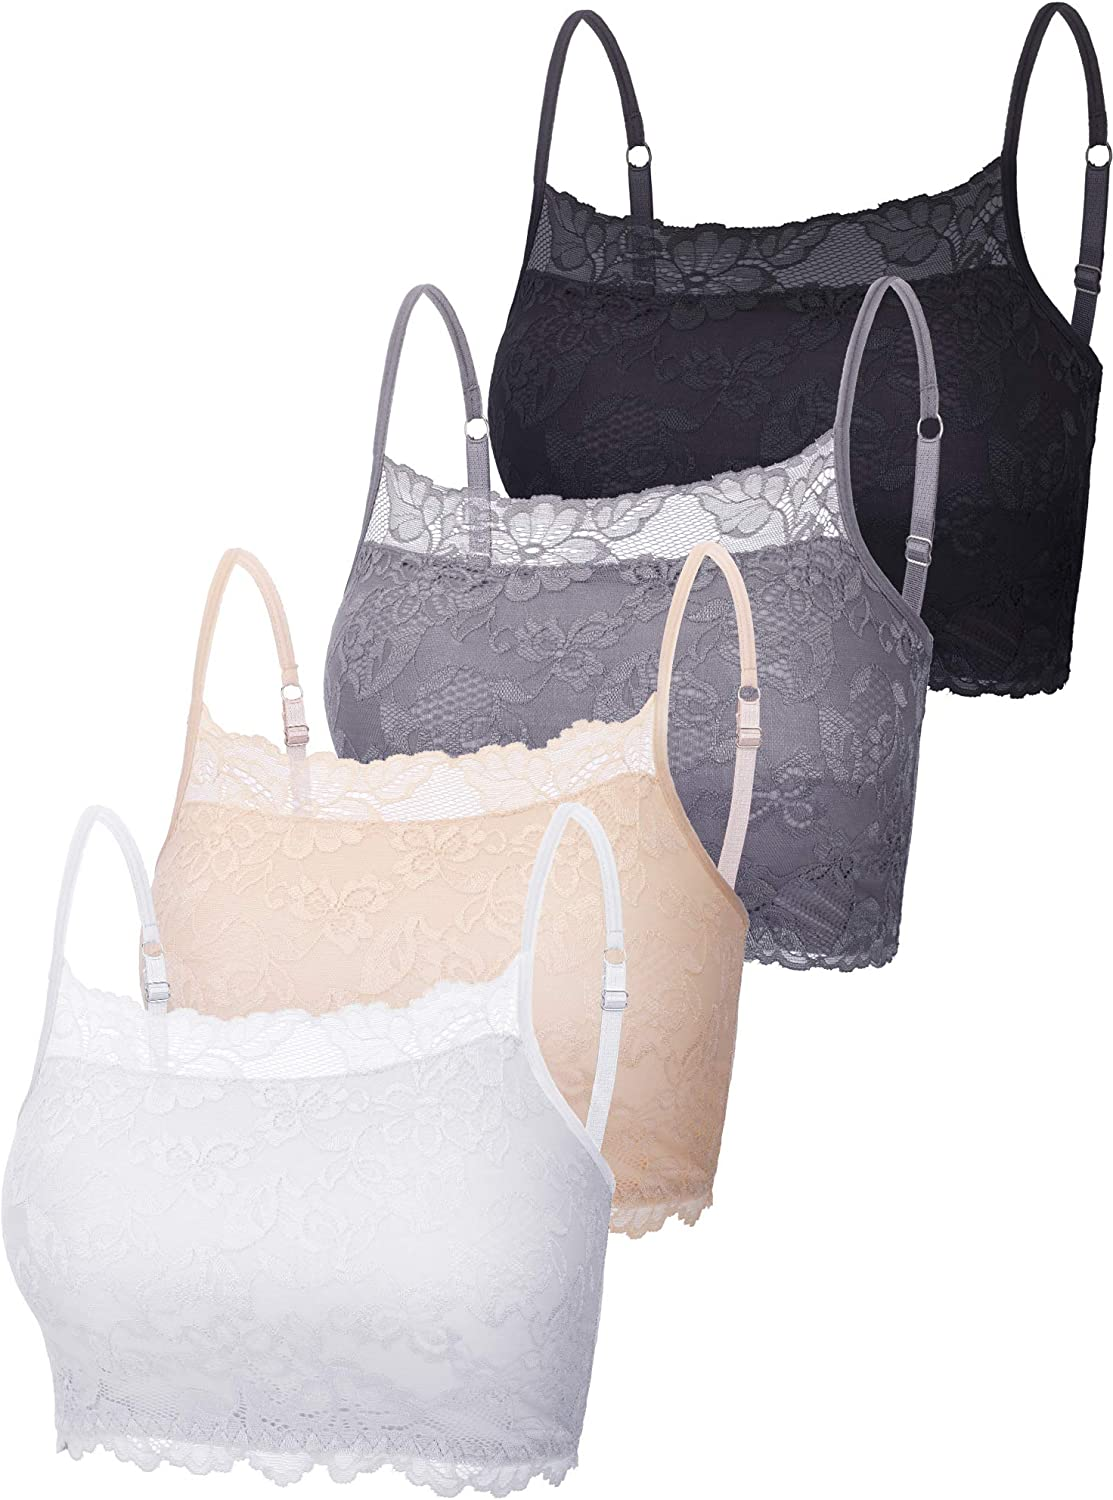 4 Pieces Women's Lace Cami Stretch Lace Half Cami Breathable Lace Bralette Top for Women Girls